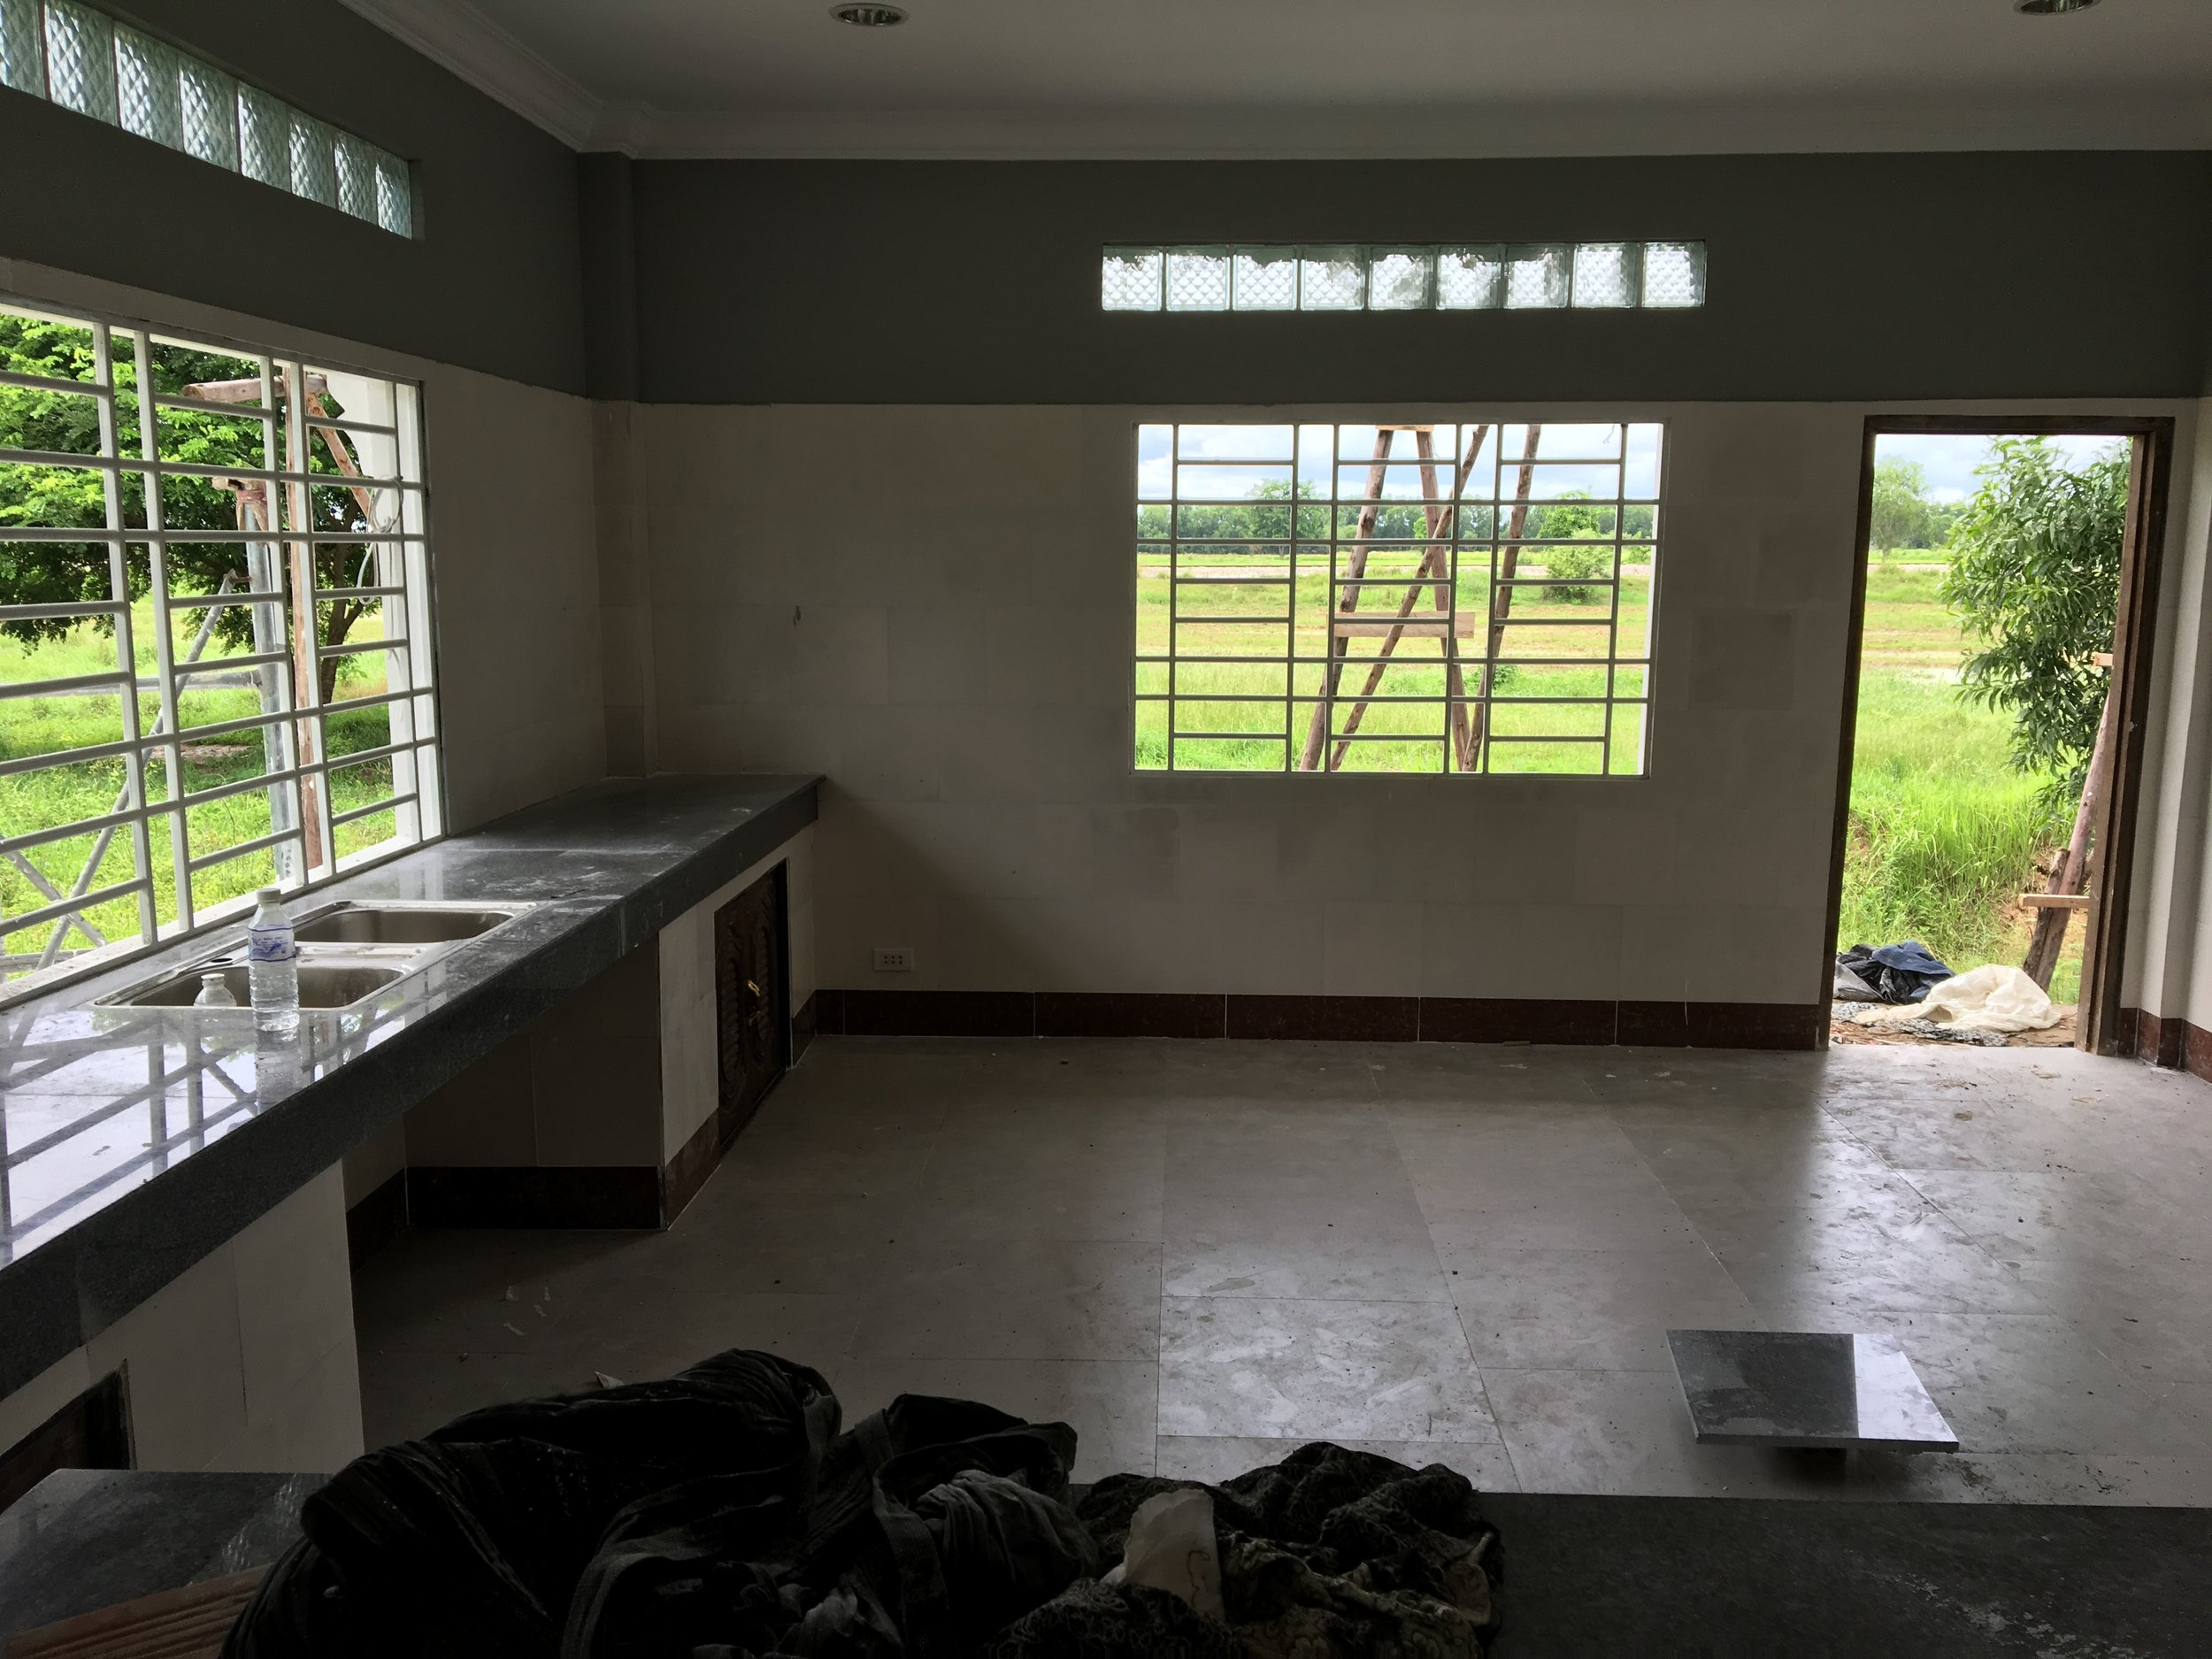 The Kitchen...waiting on a faucet, windows and door...